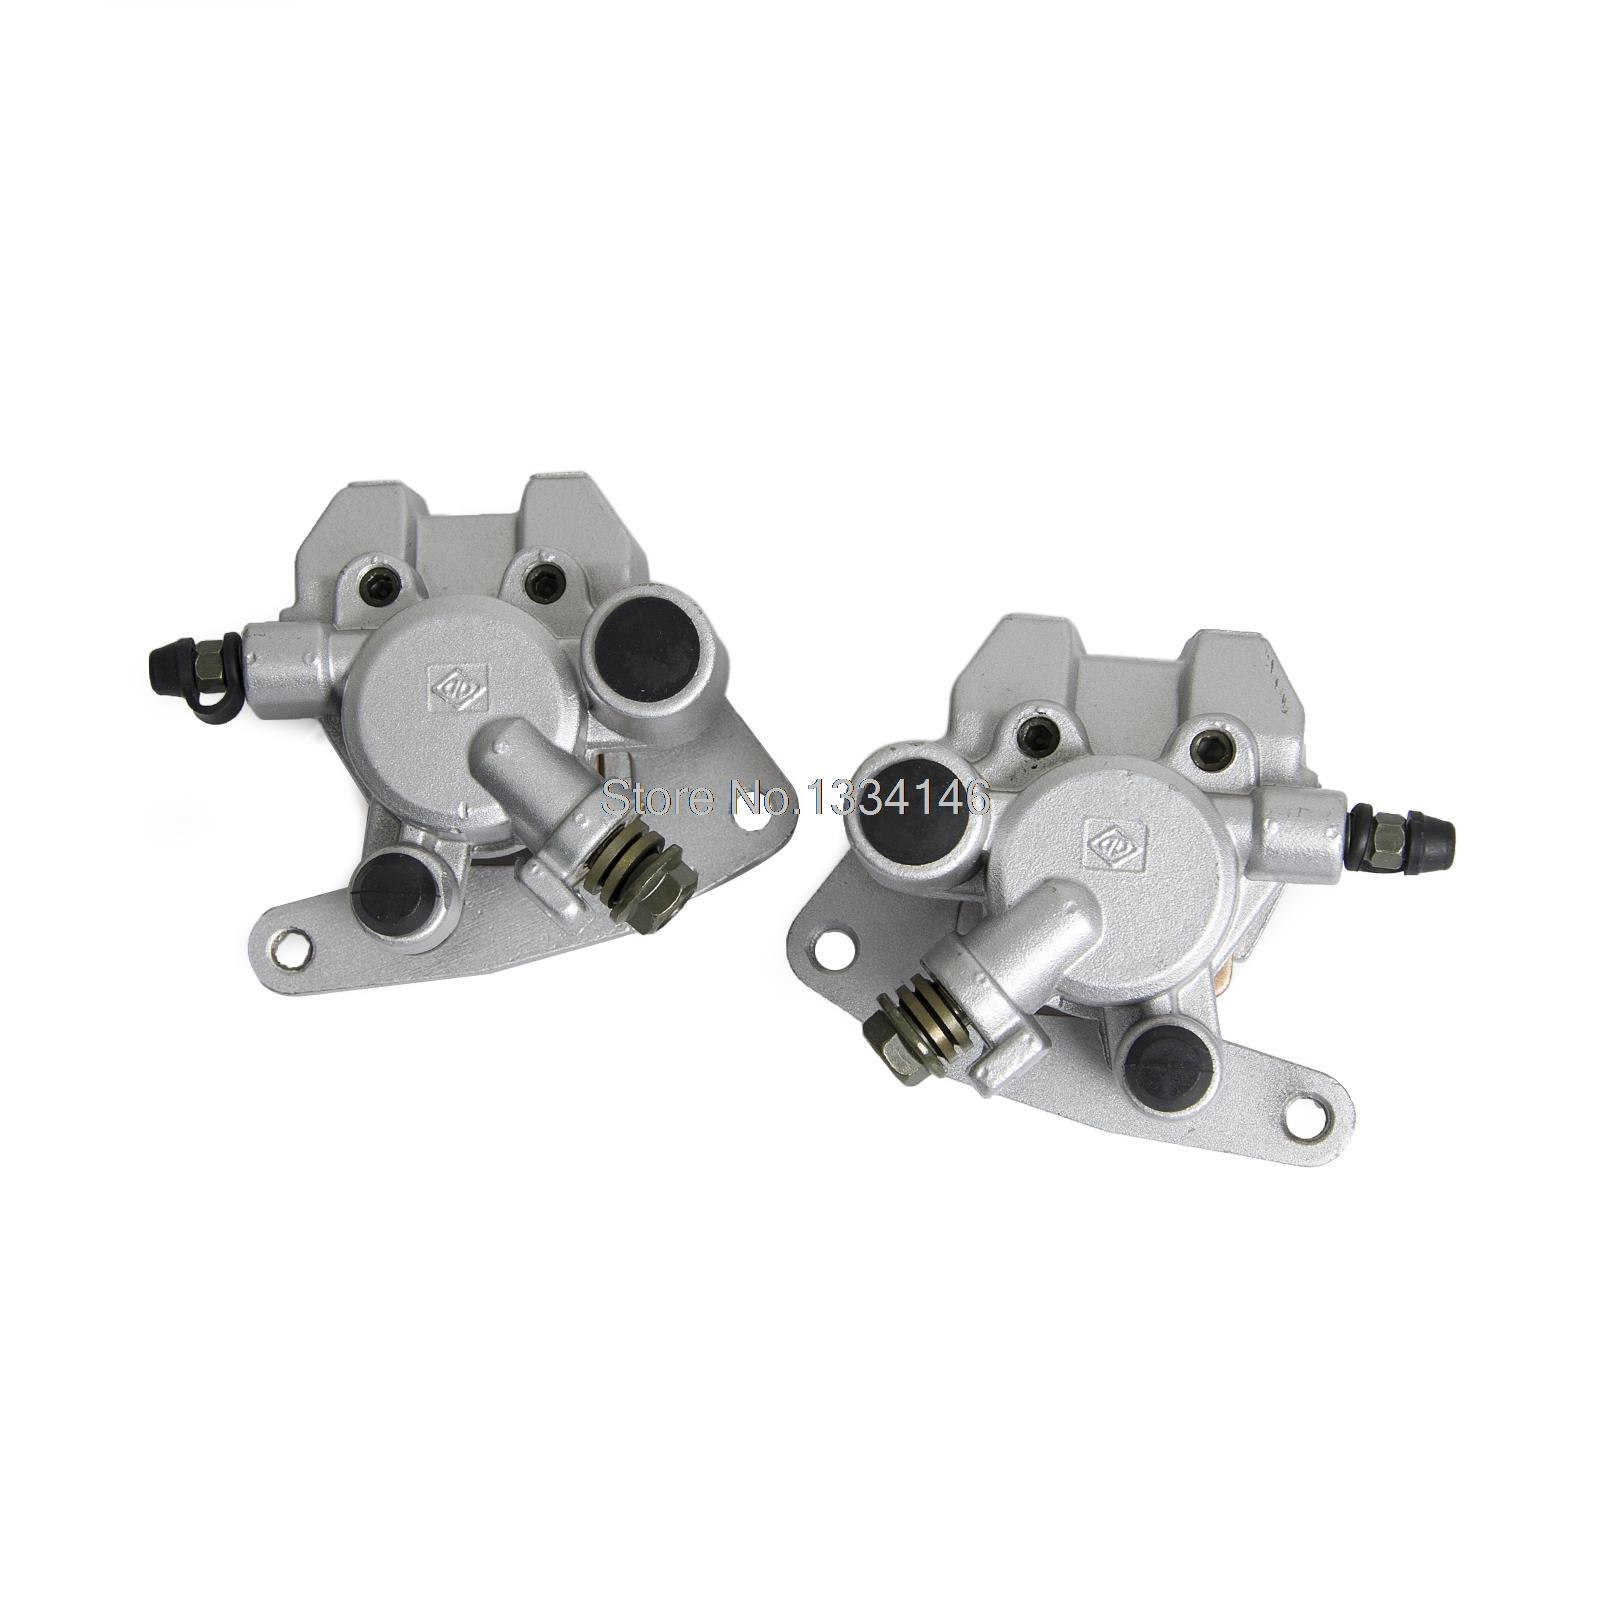 FRONT BRAKE CALIPER SET WITH PADS FOR YAMAHA RAPTOR 660 01-05 YFM660 WITH PADS